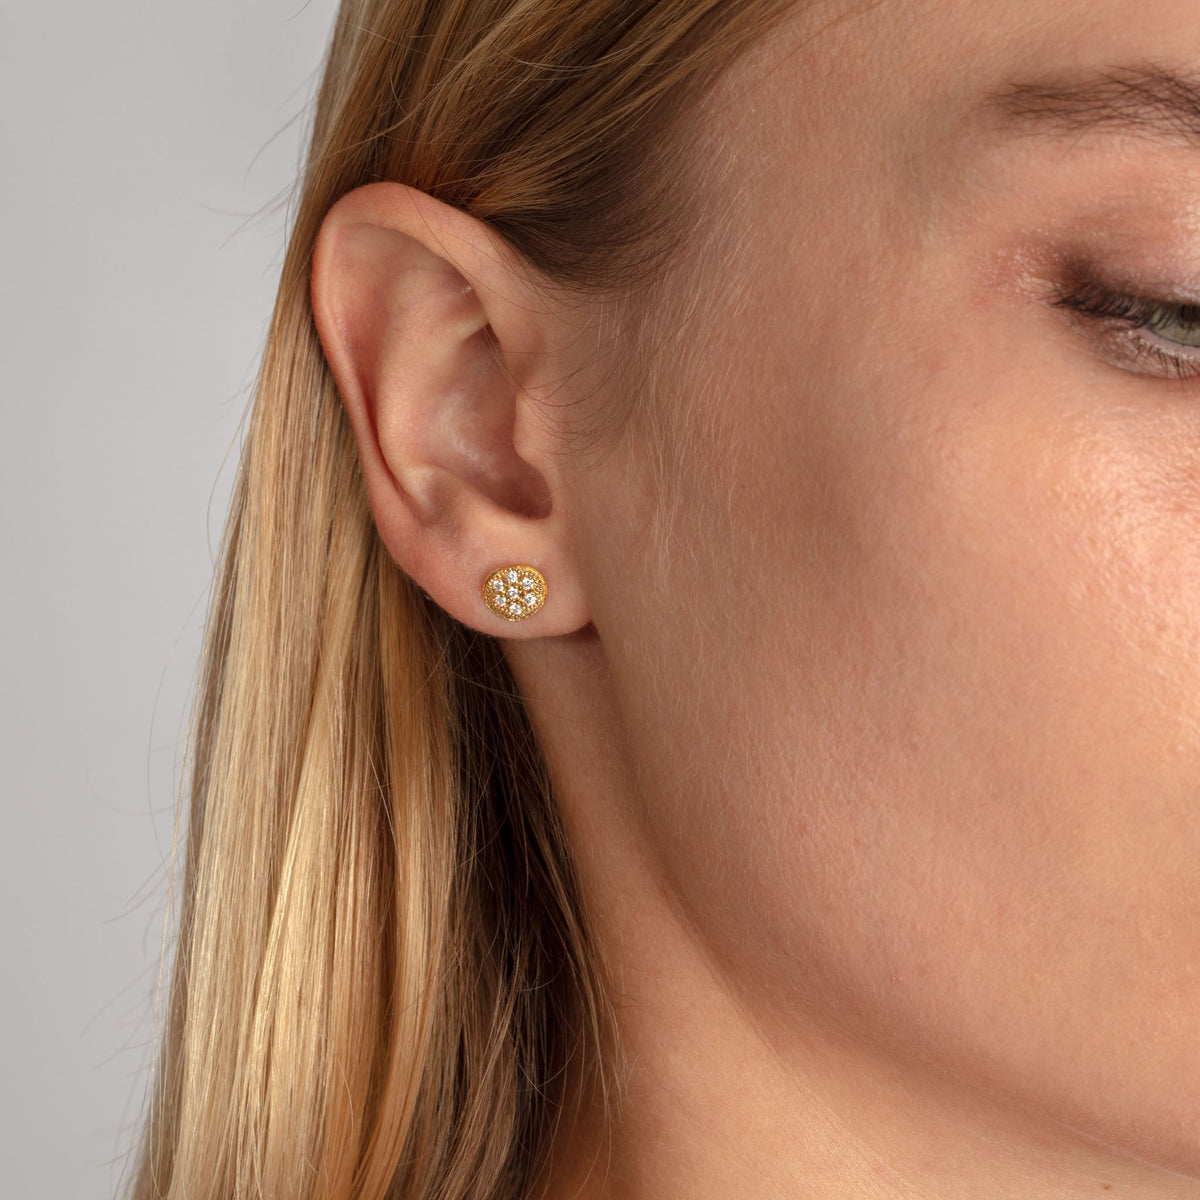 MODERN PAVE 7 Diamonds Stud Earrings in 18ct Gold